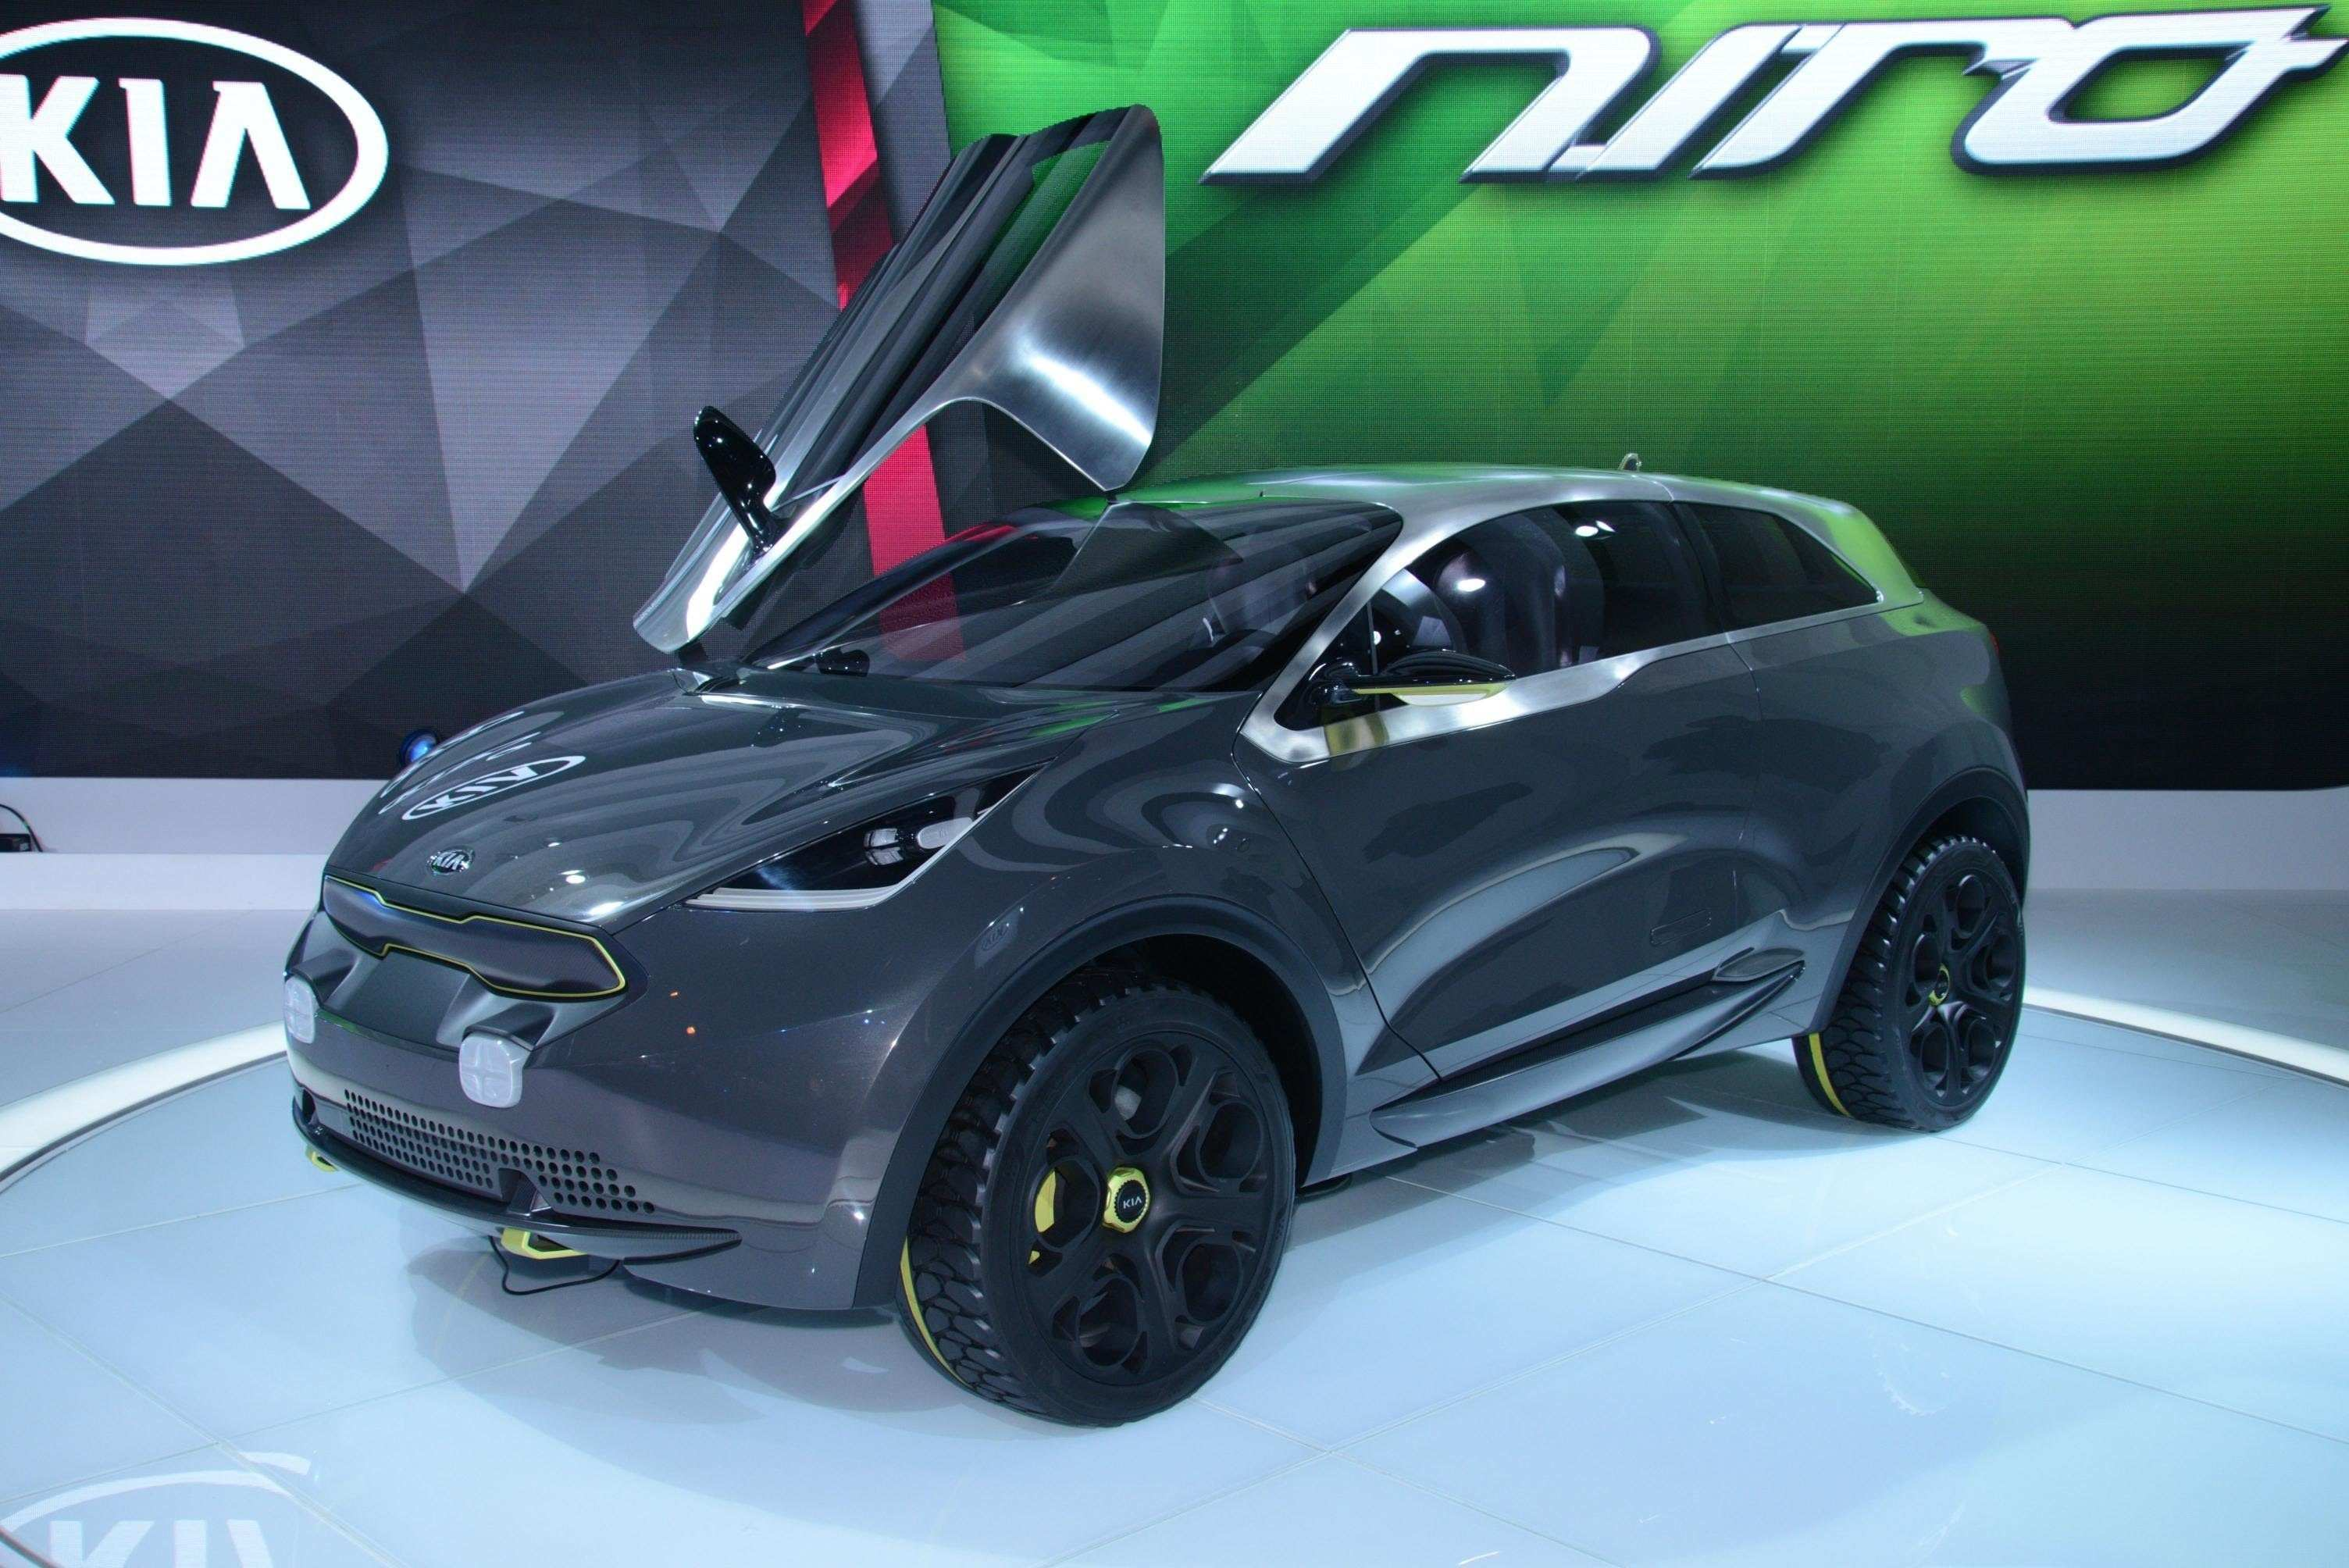 29 Gallery of Kia Niro 2020 First Drive for Kia Niro 2020